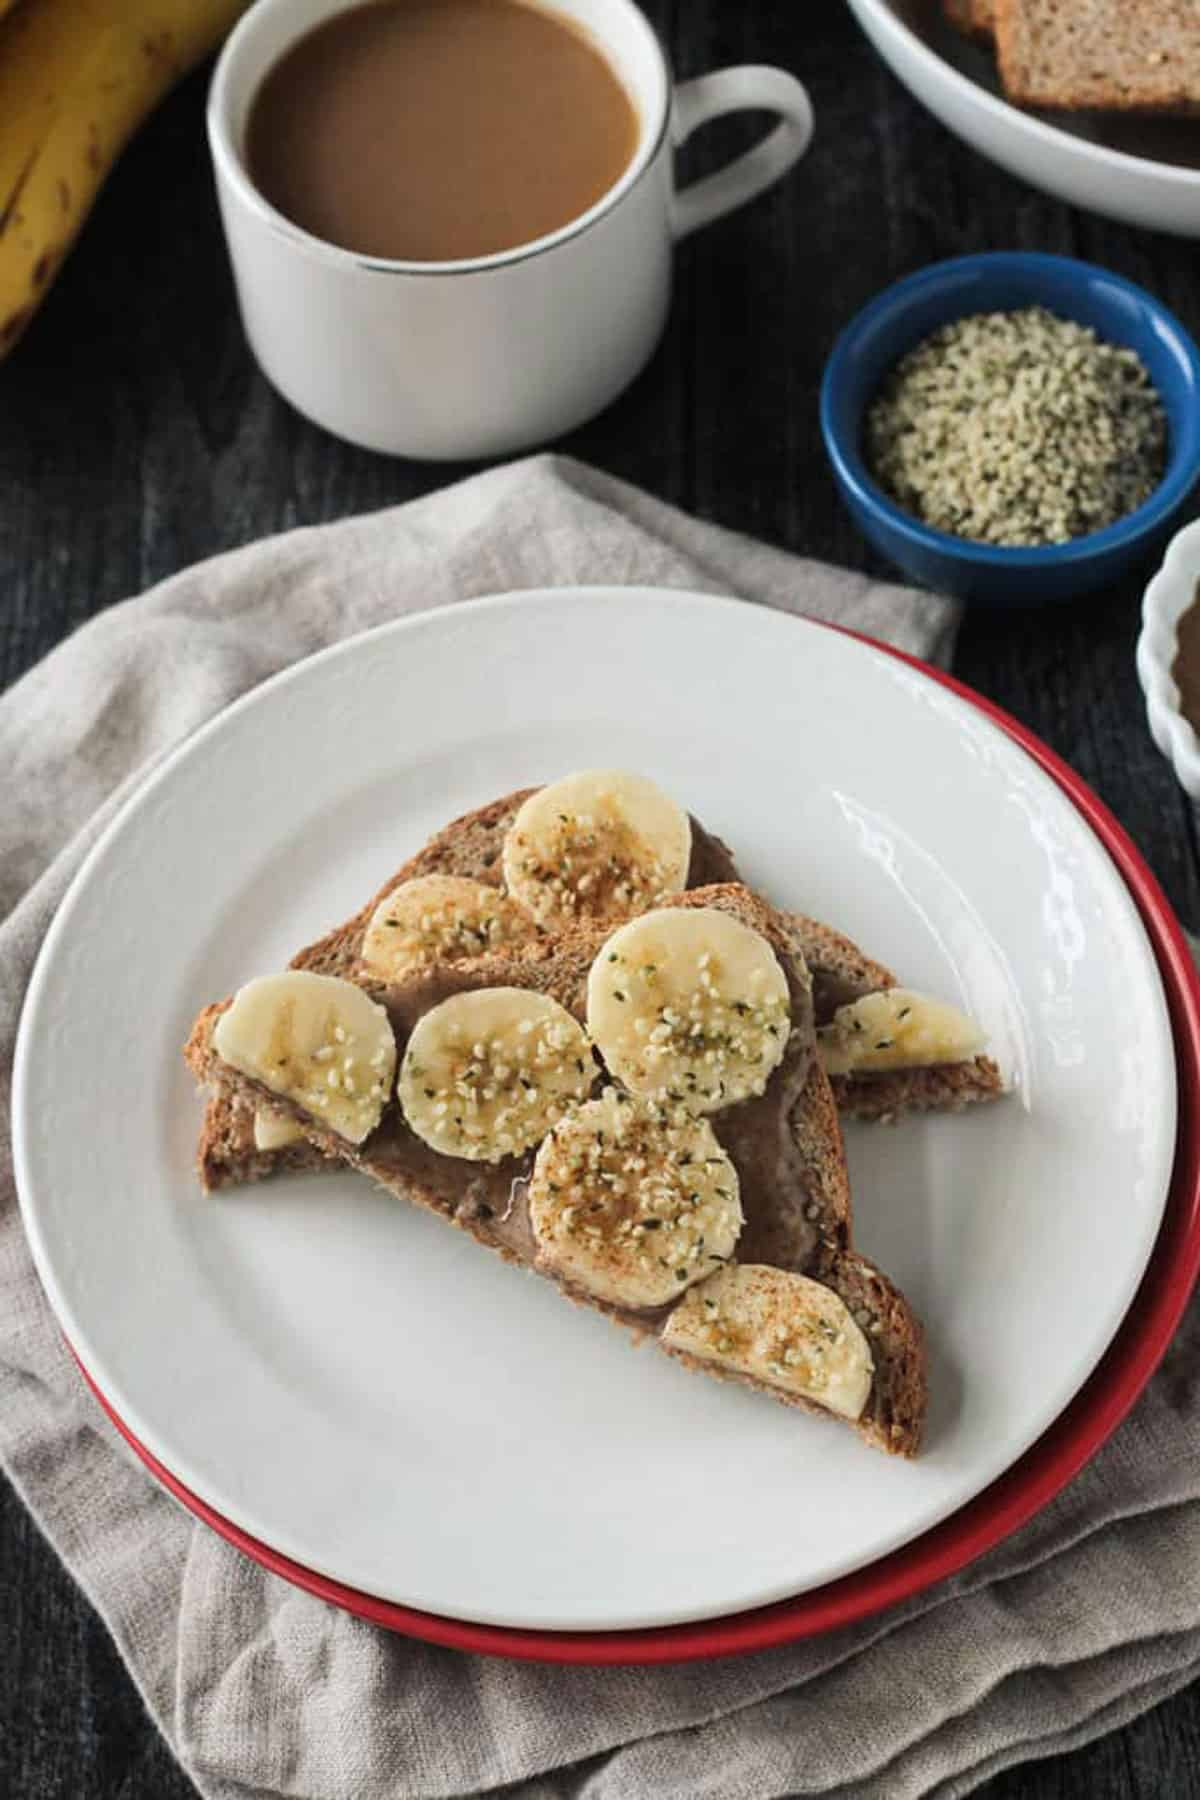 Bread cut in half diagonally and topped with almond butter, slices of bananas, and hemp seeds.